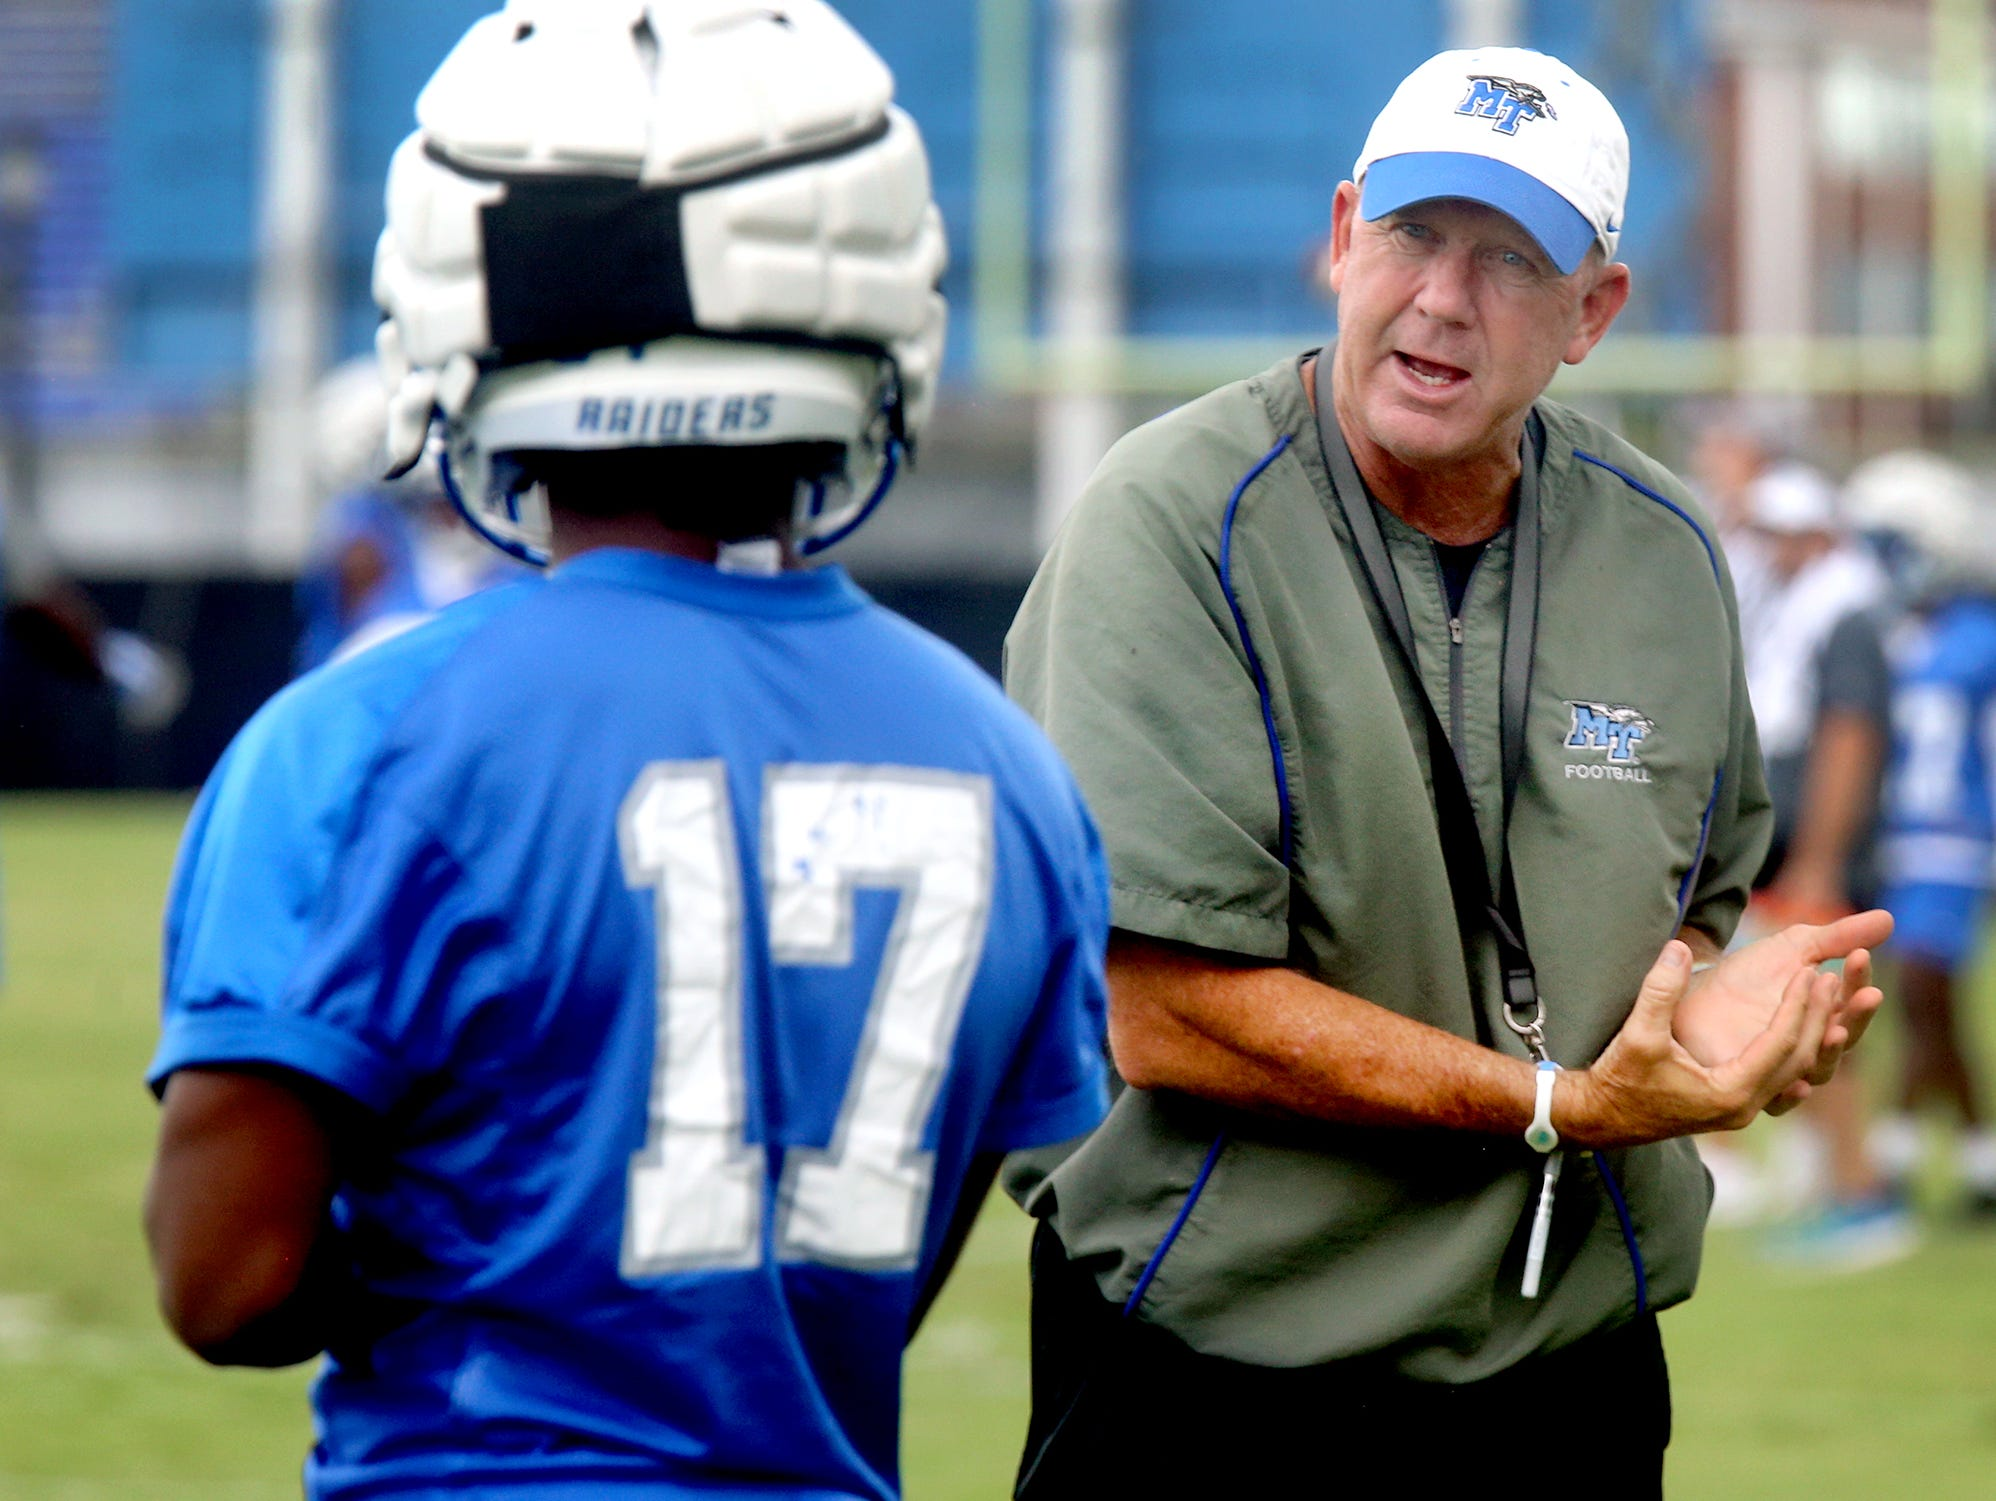 MTSU's Head Coach Rick Stockstill works with Kylan Stribling (17) during practice, on Tuesday, Aug. 1, 2017.